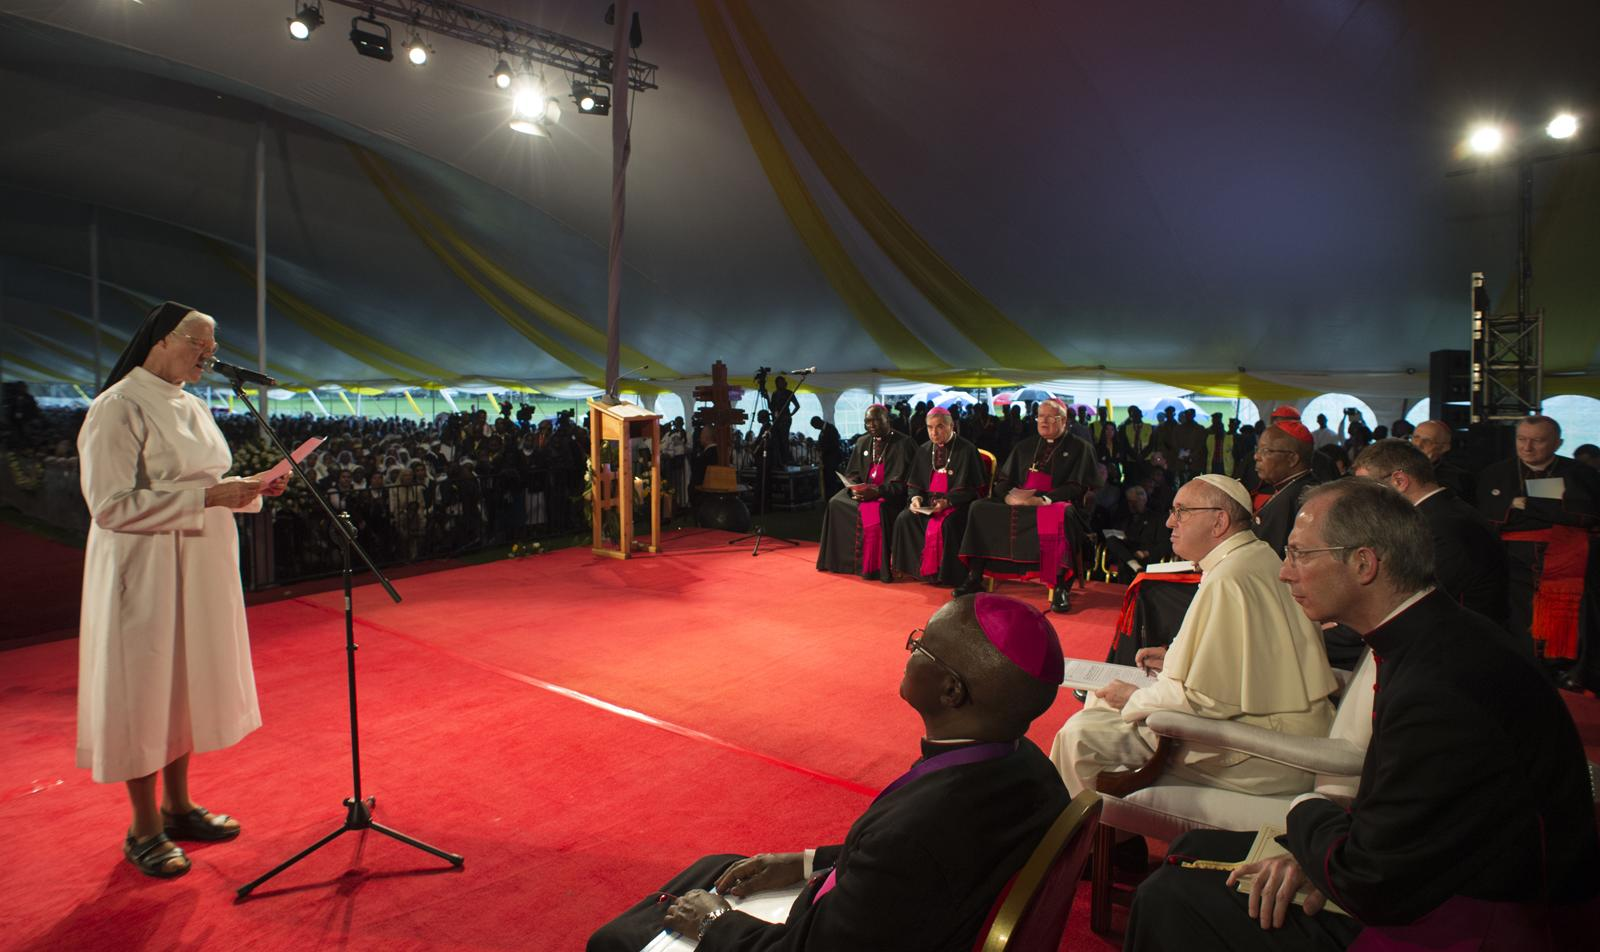 Pope presses case for adequate, dignified housing in Nairobi